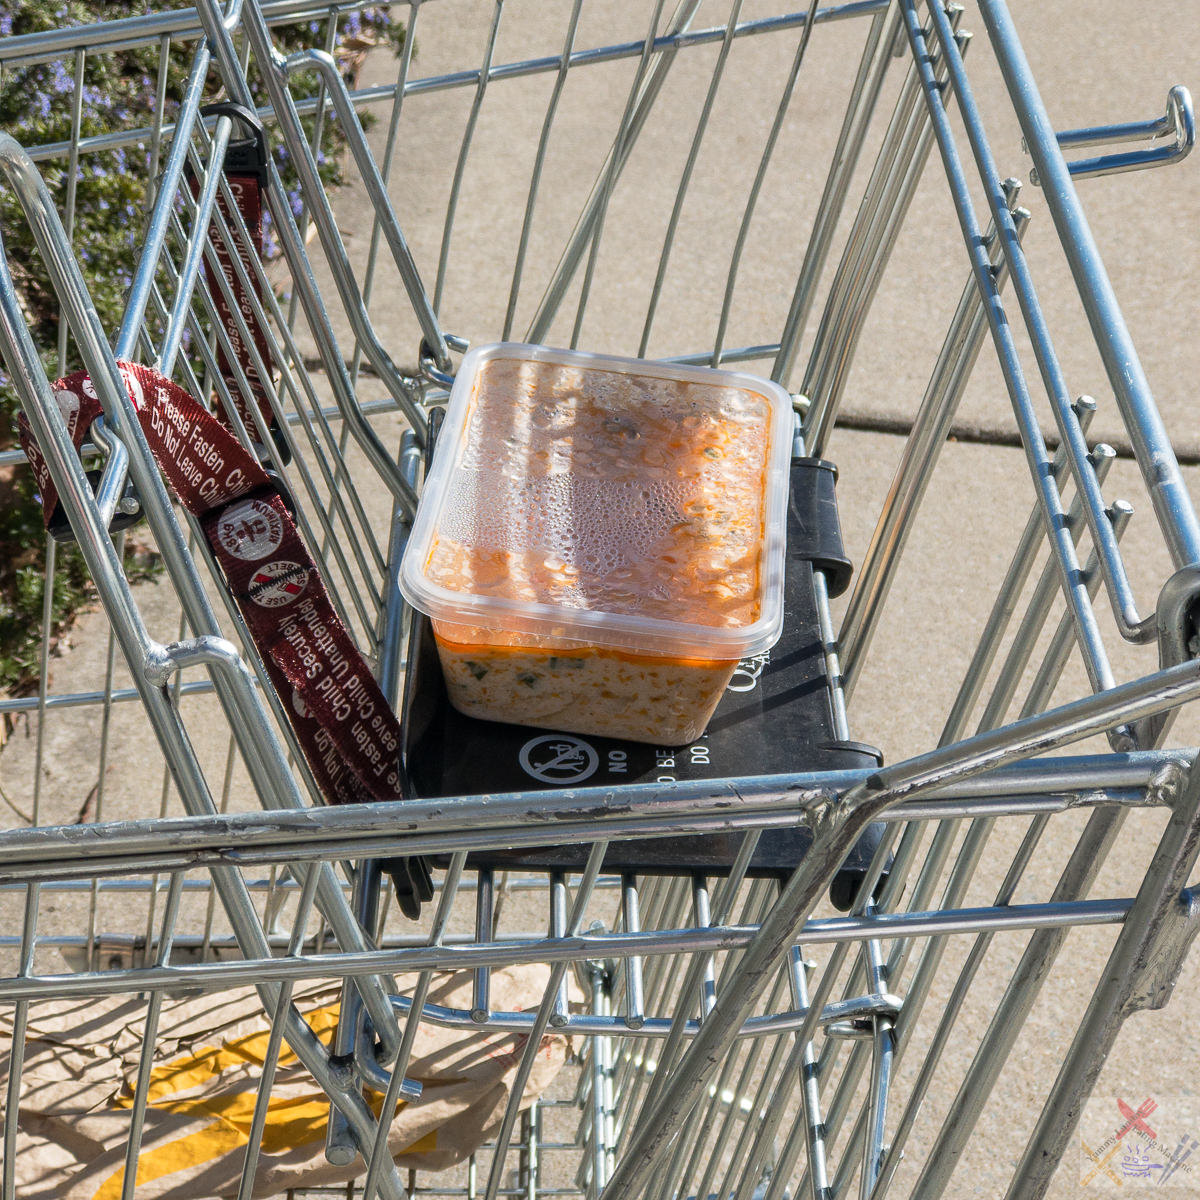 Abandoned trolley with abandoned curry Gary Lum